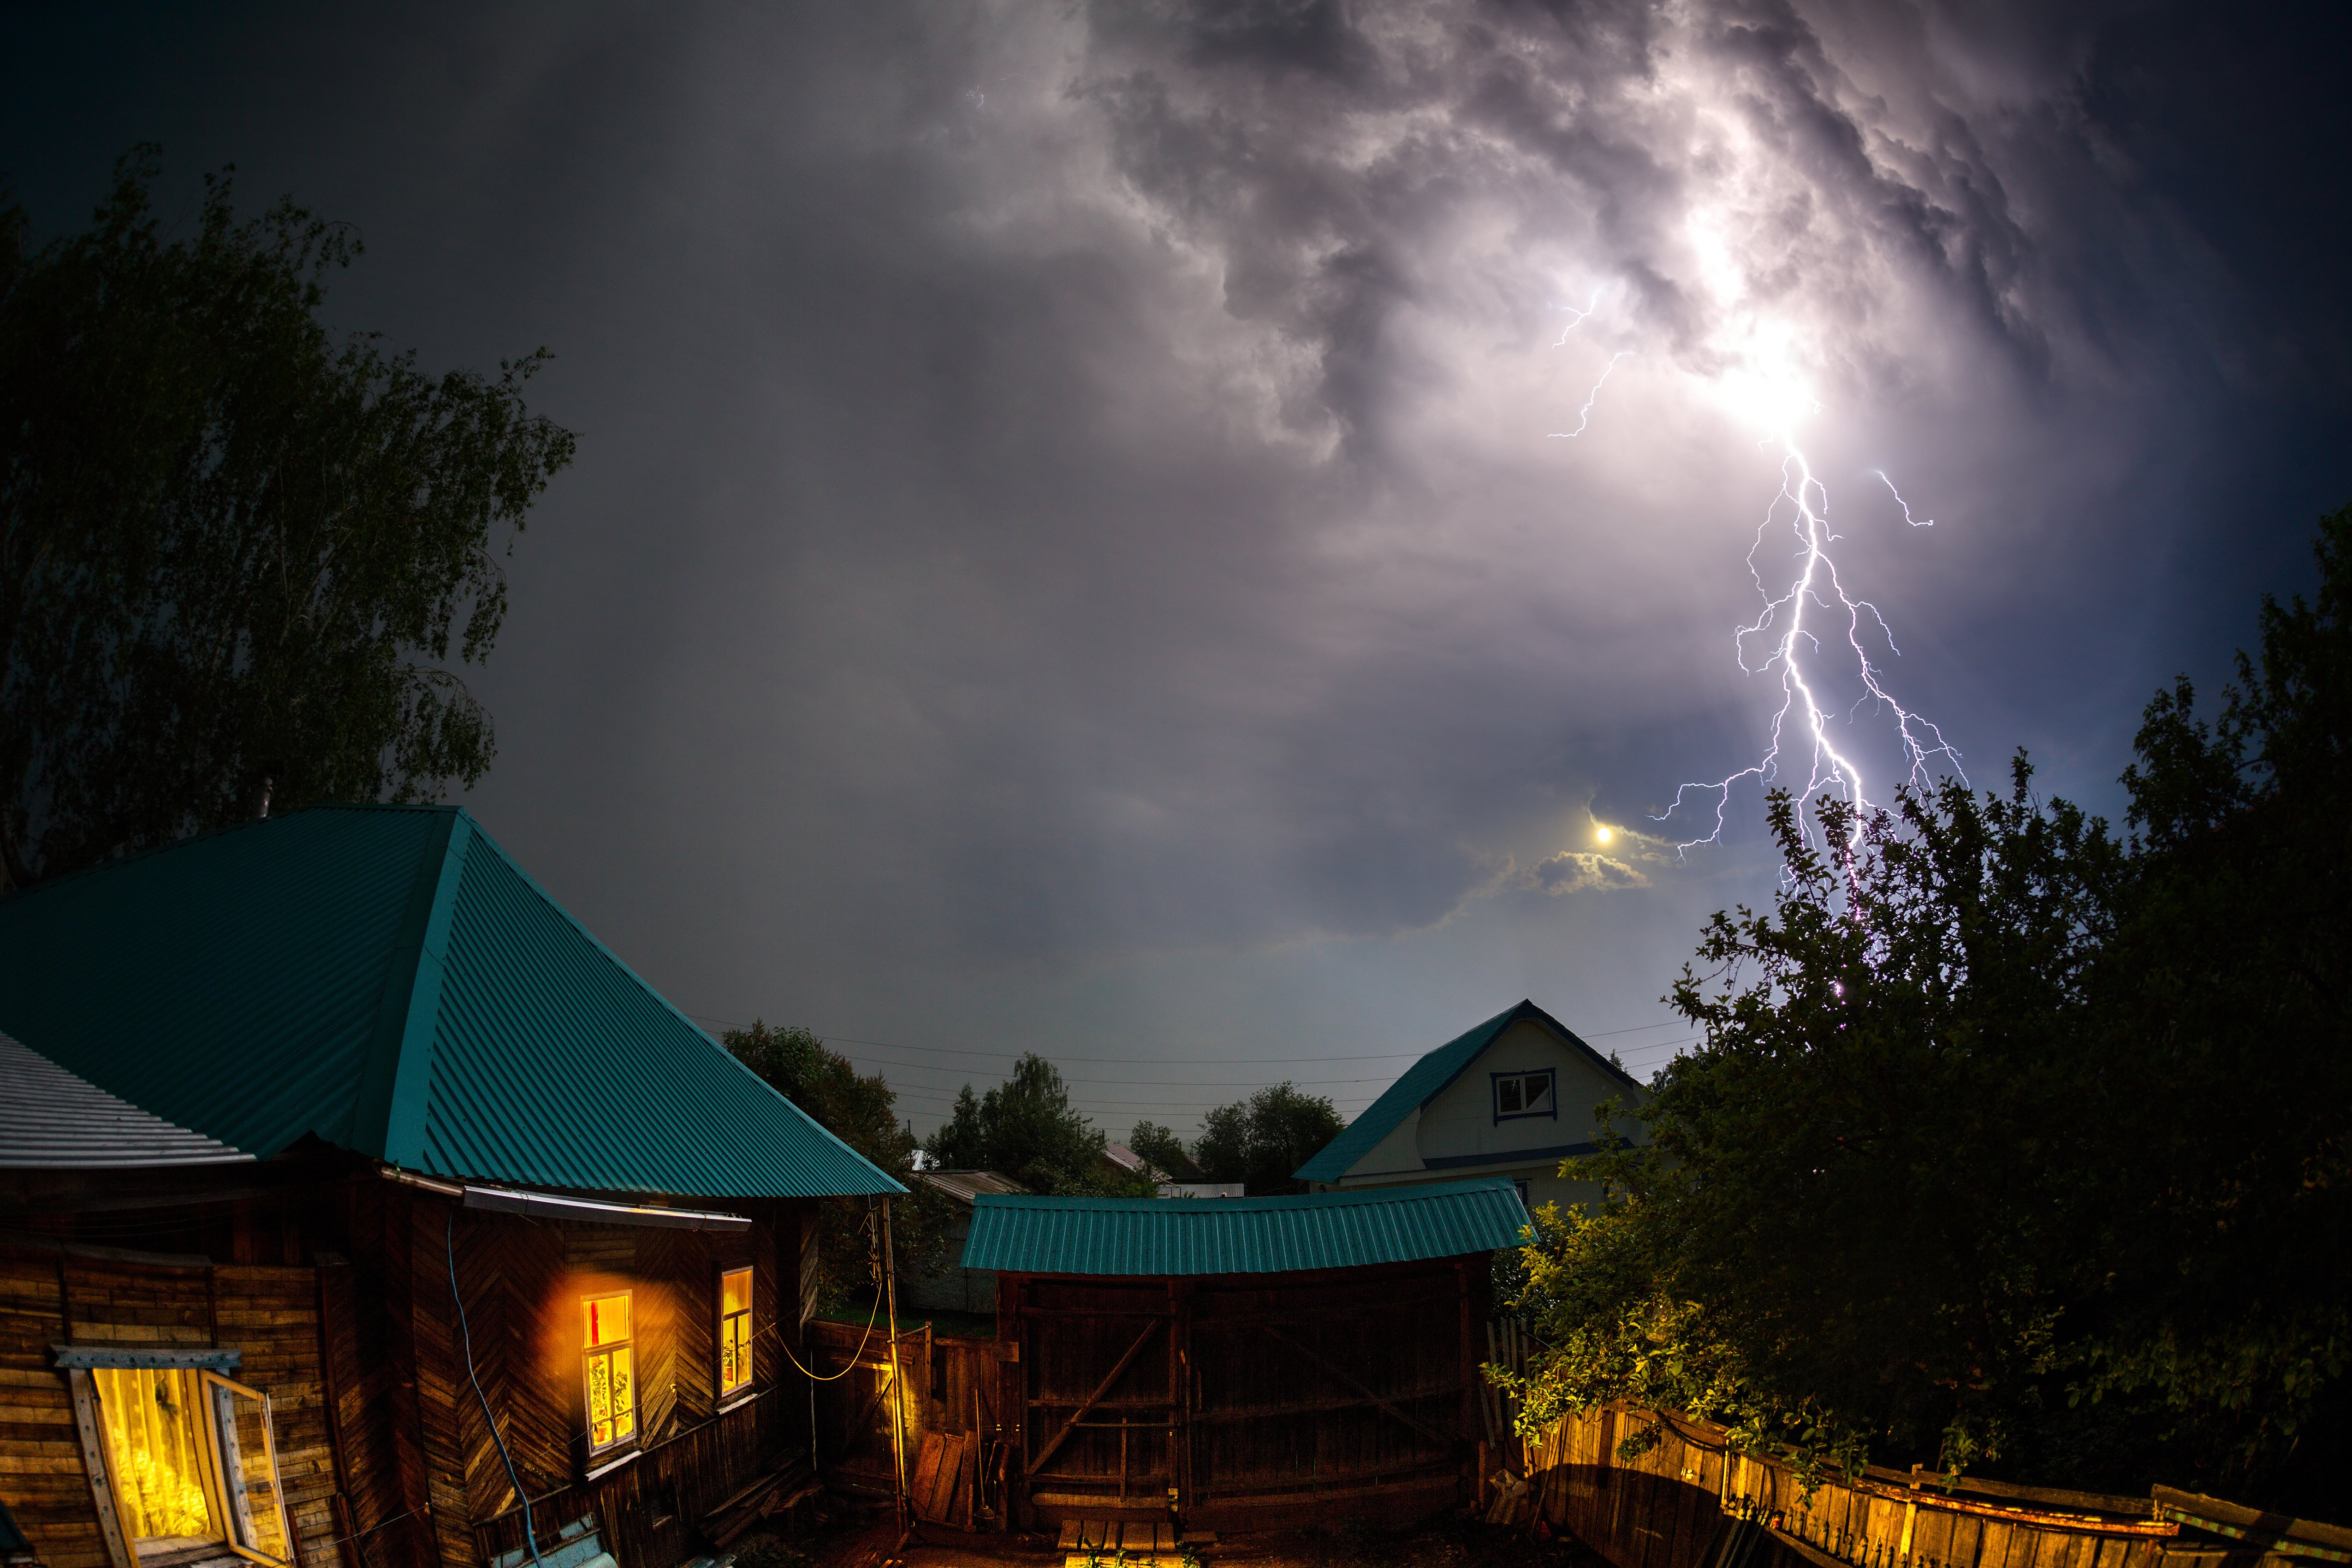 Lightning over houses in the village at night